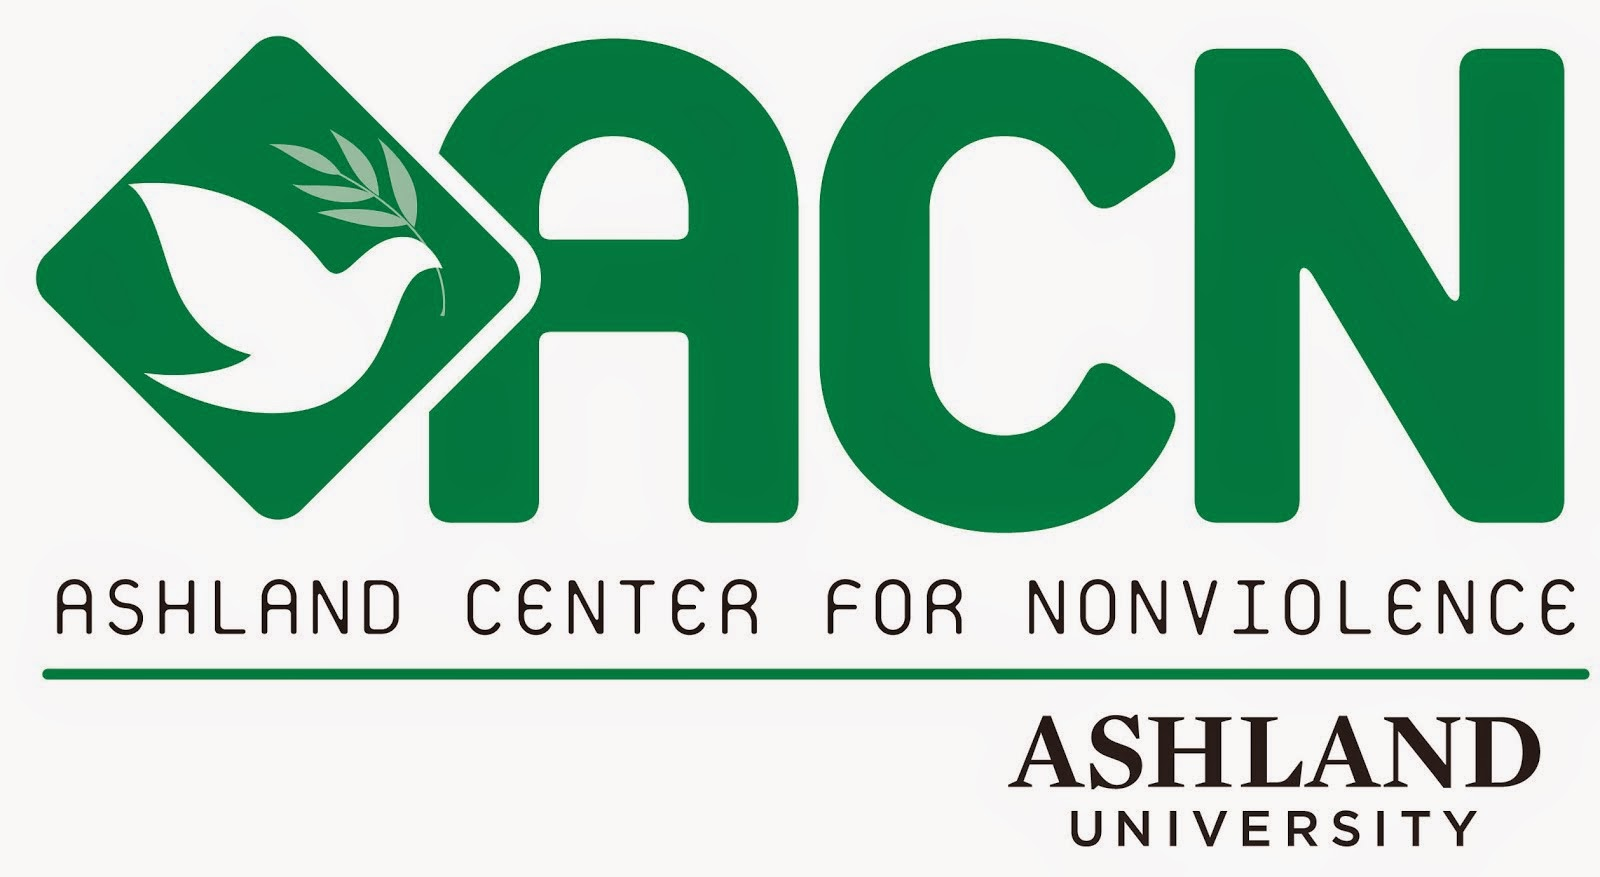 Ashland Center for Nonviolence